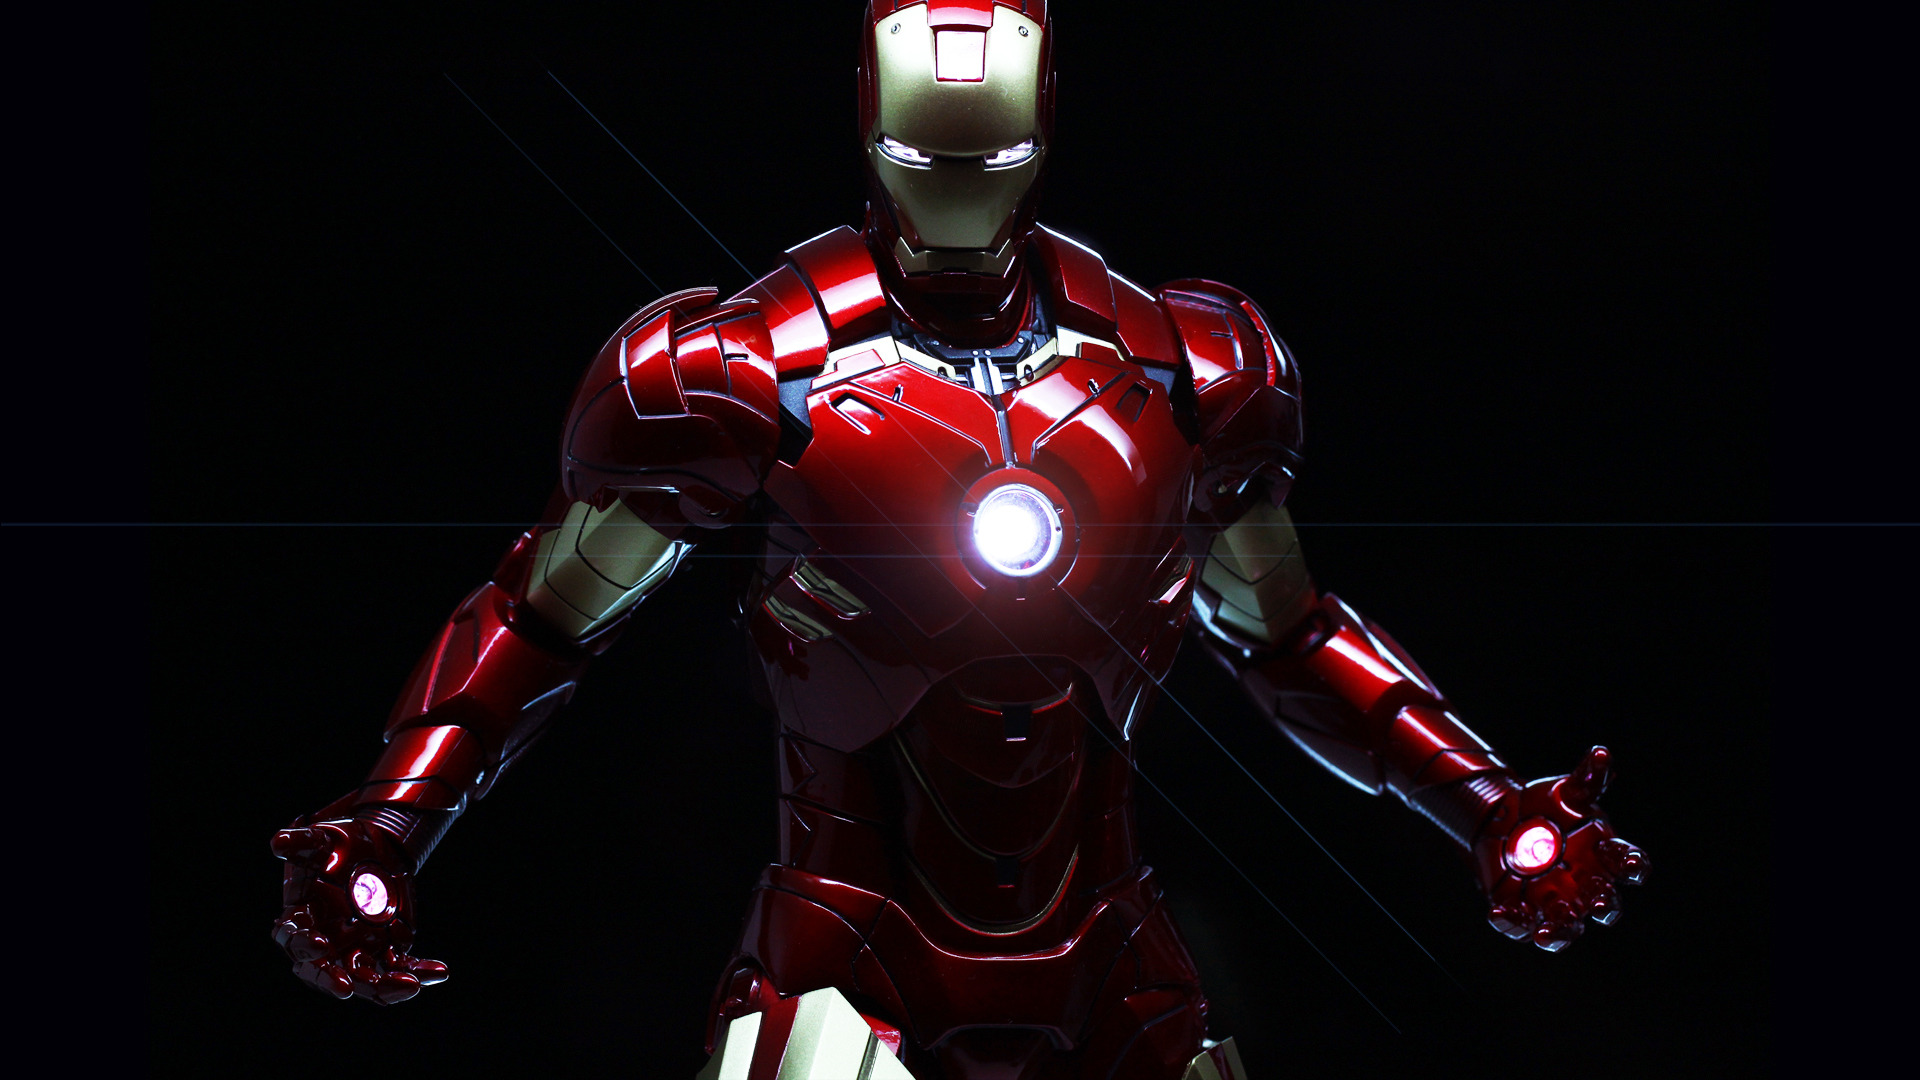 wallpaper details file name iron man wallpaper hd uploaded by 1920x1080